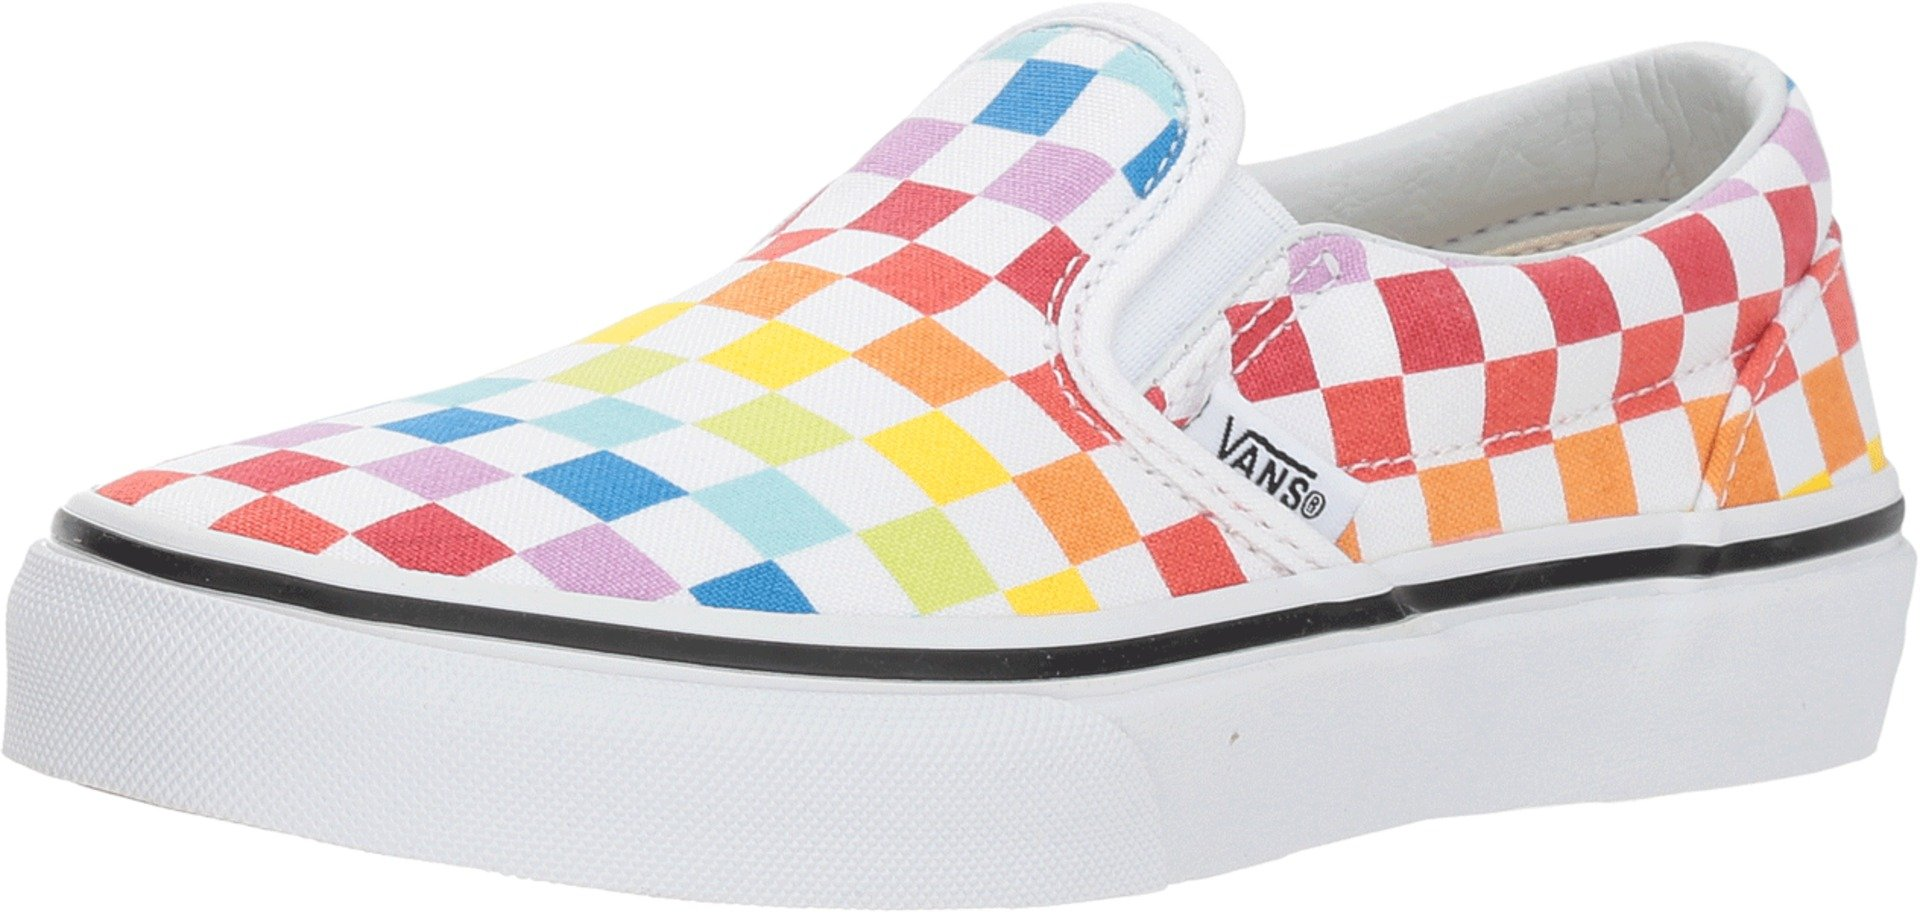 4cb67c1a64beb3 Galleon - Vans Kids K Clasic Slip ON Checkerboard Rainbow White Size 12